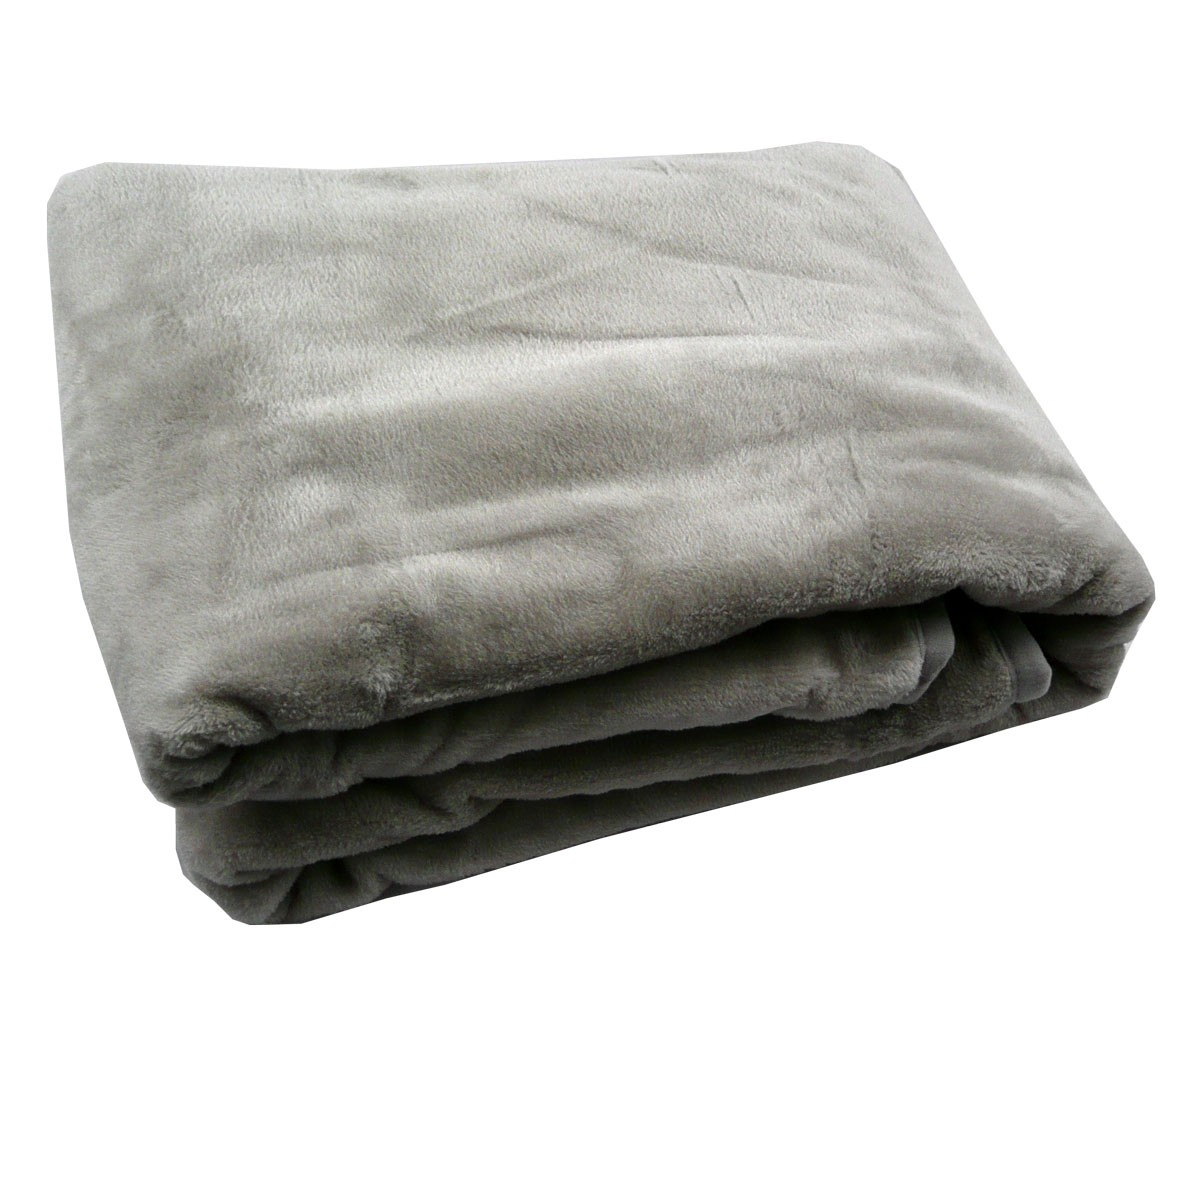 fleece decke kuscheldecke flauschdecke grau 150x200cm. Black Bedroom Furniture Sets. Home Design Ideas